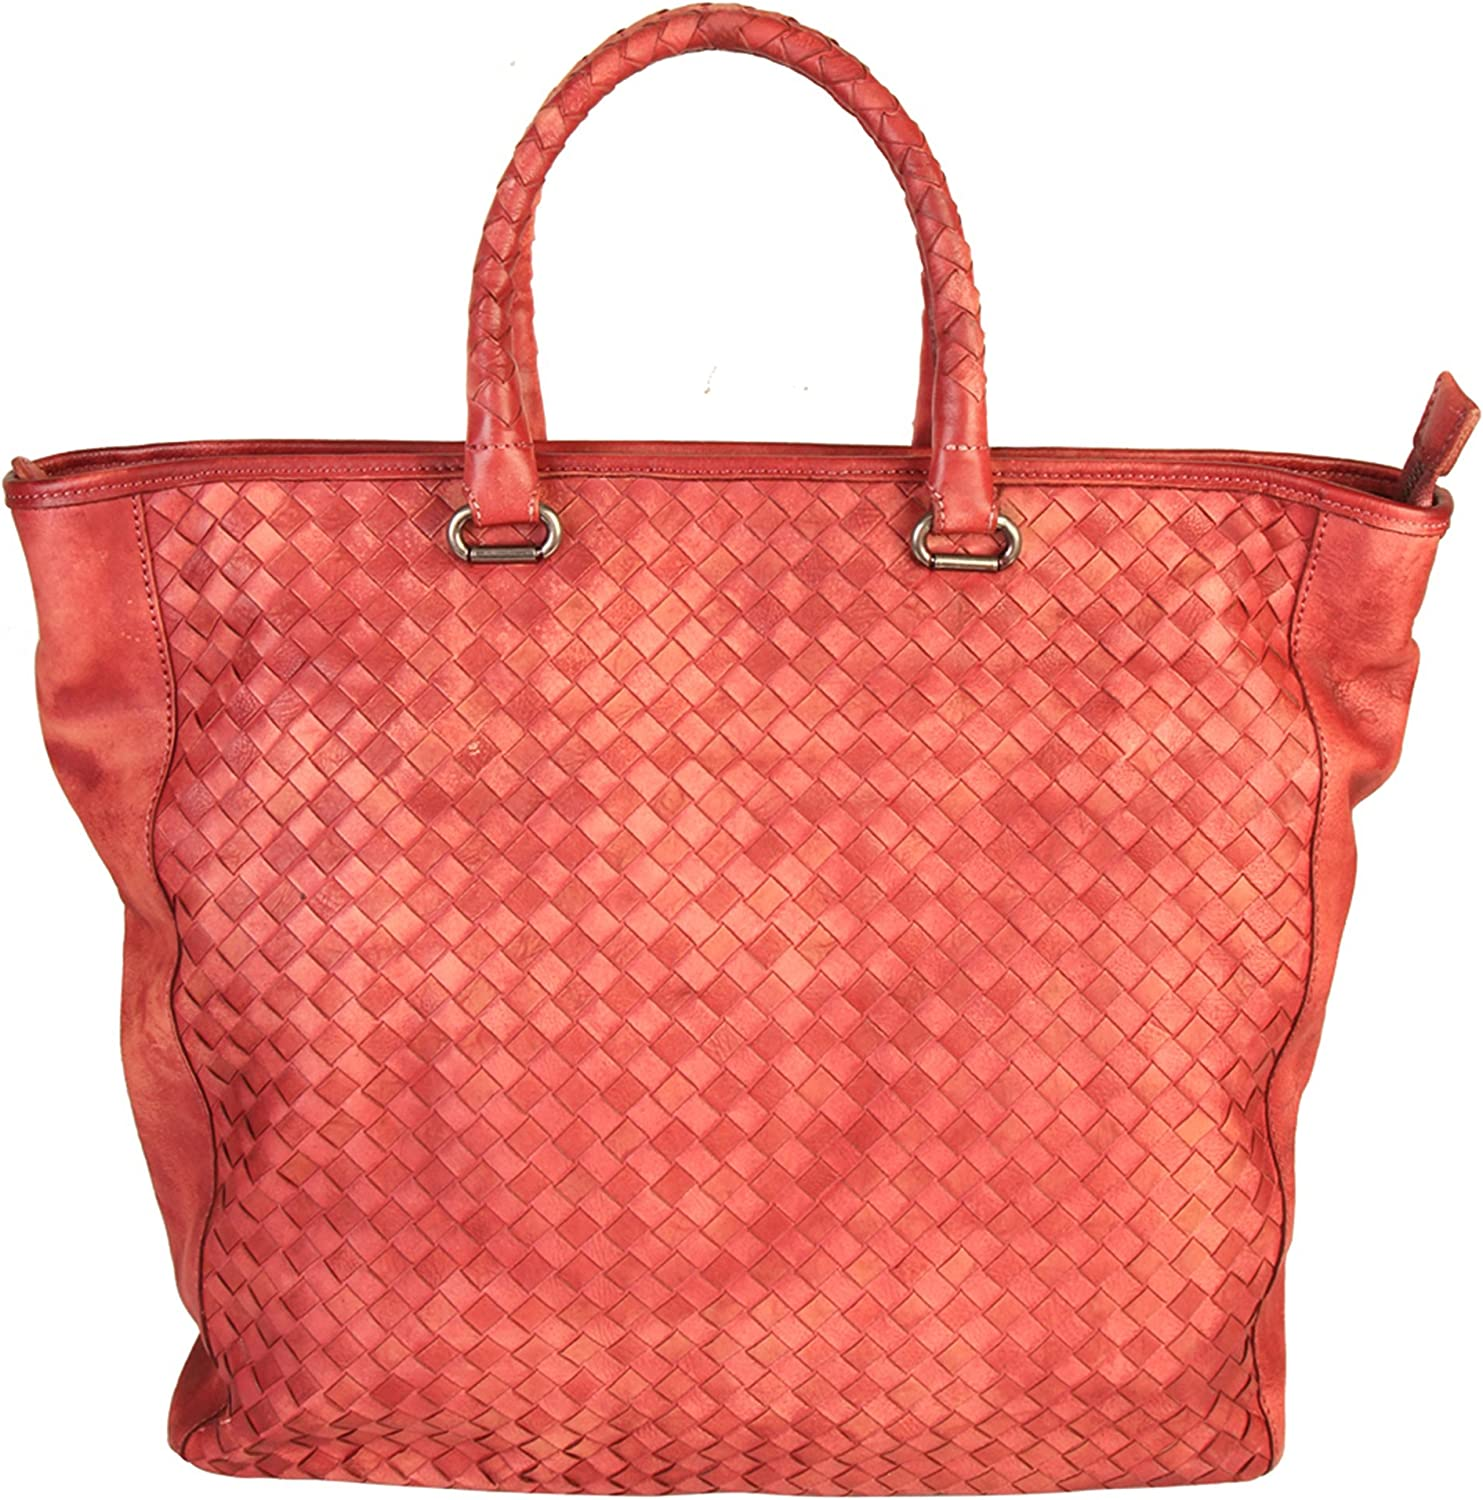 Diophy Womens Quilted Genuine Leather Top Handles Tote Handbag 150177